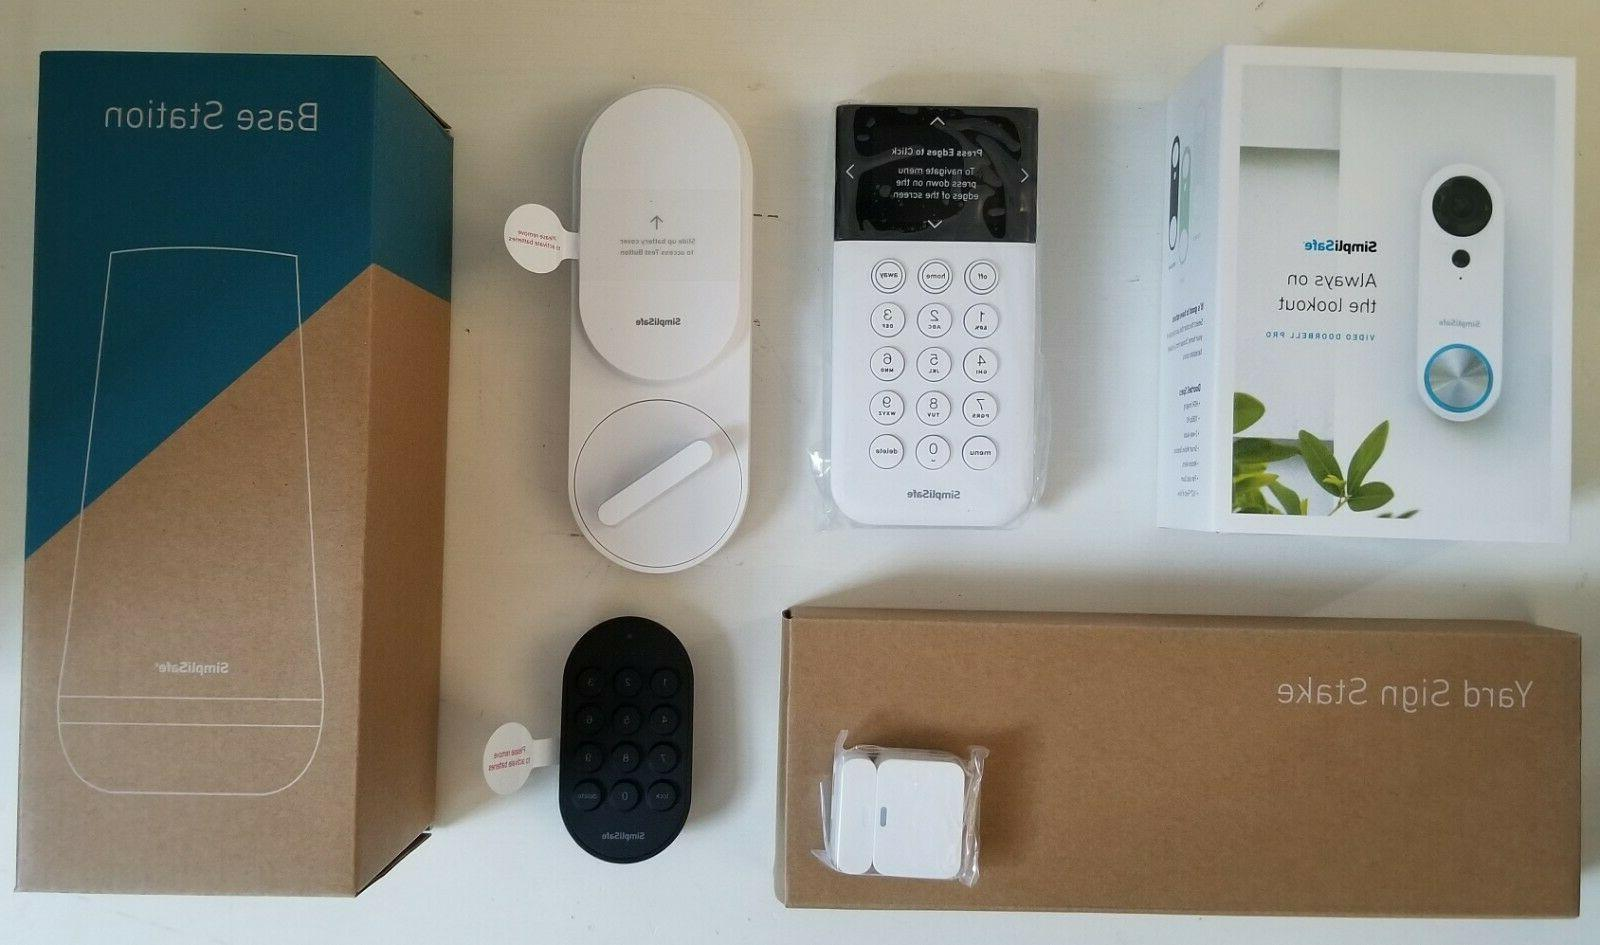 entryway security system kit 1080p hdr video